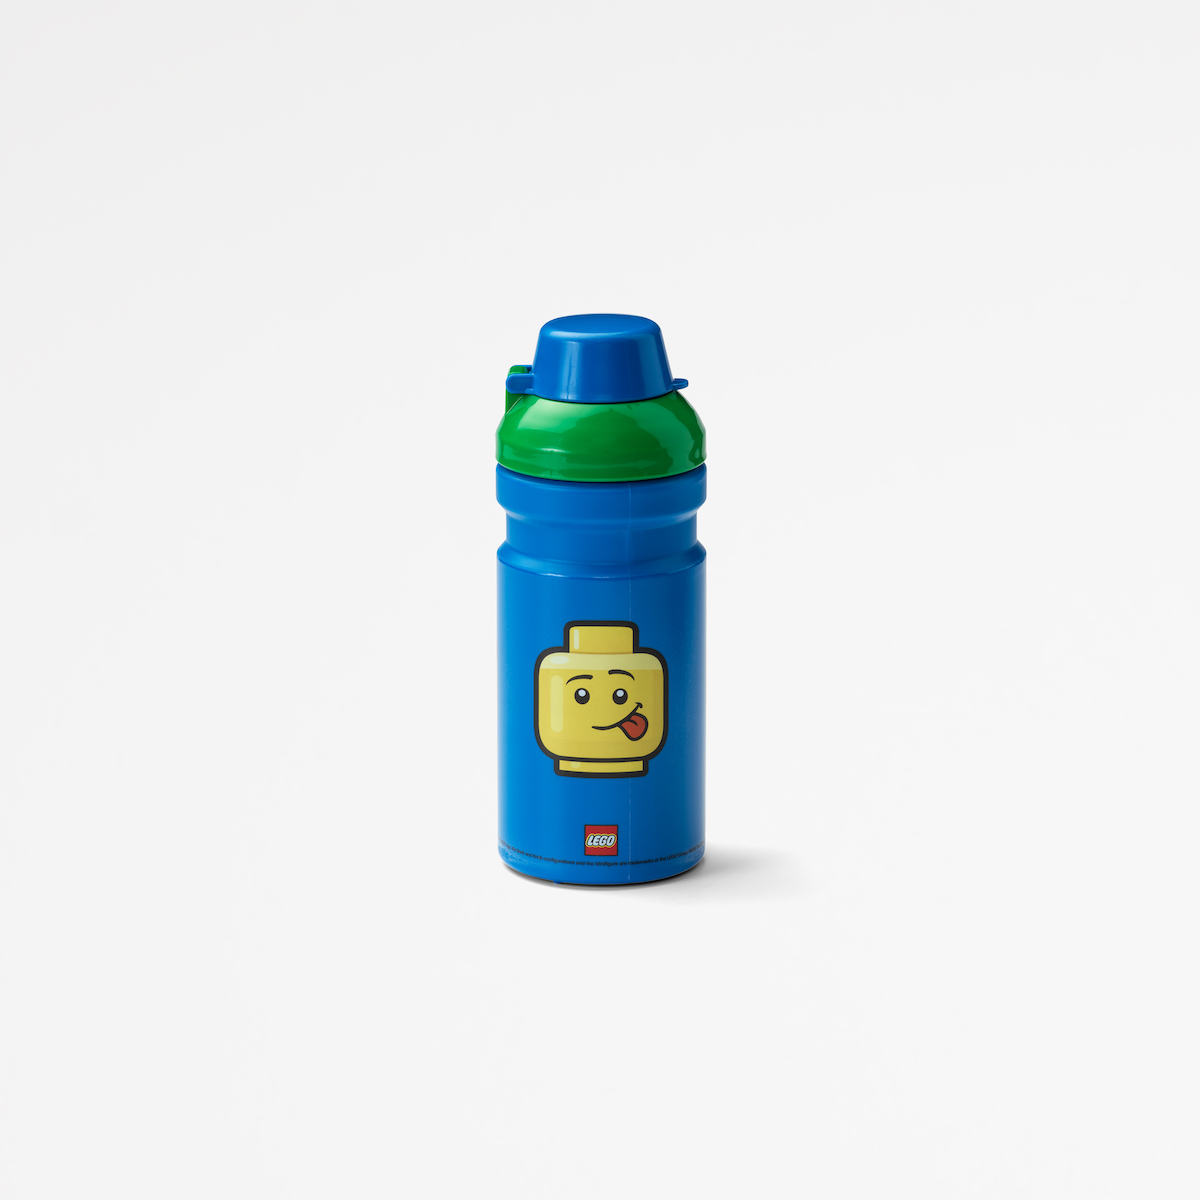 Lego drinking bottle, plastic, food, lunch, children, fun, green, boy